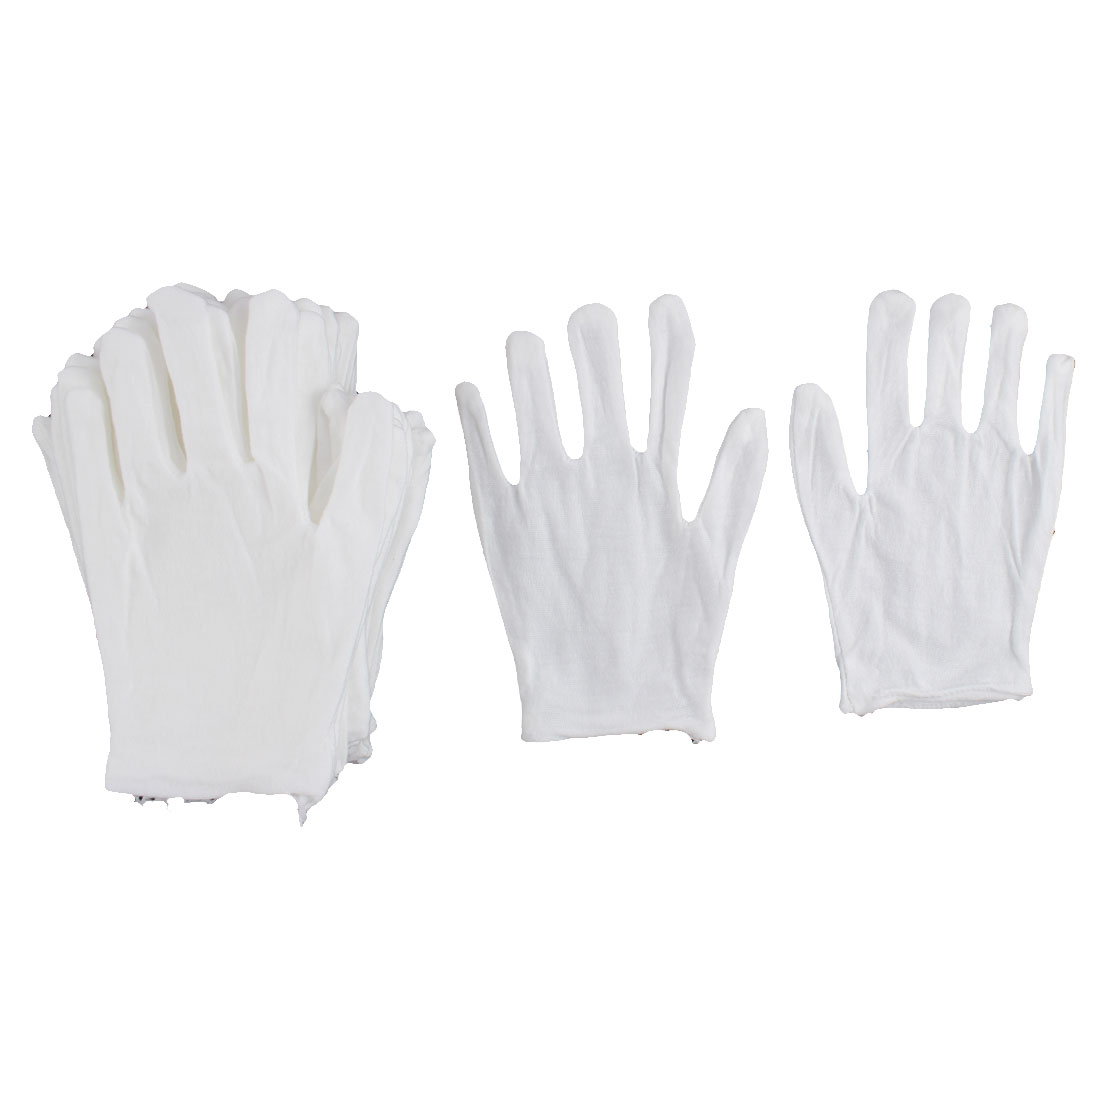 Working Labor Work Stretchy Cuff Full Finger Protective Gloves White 12Pcs